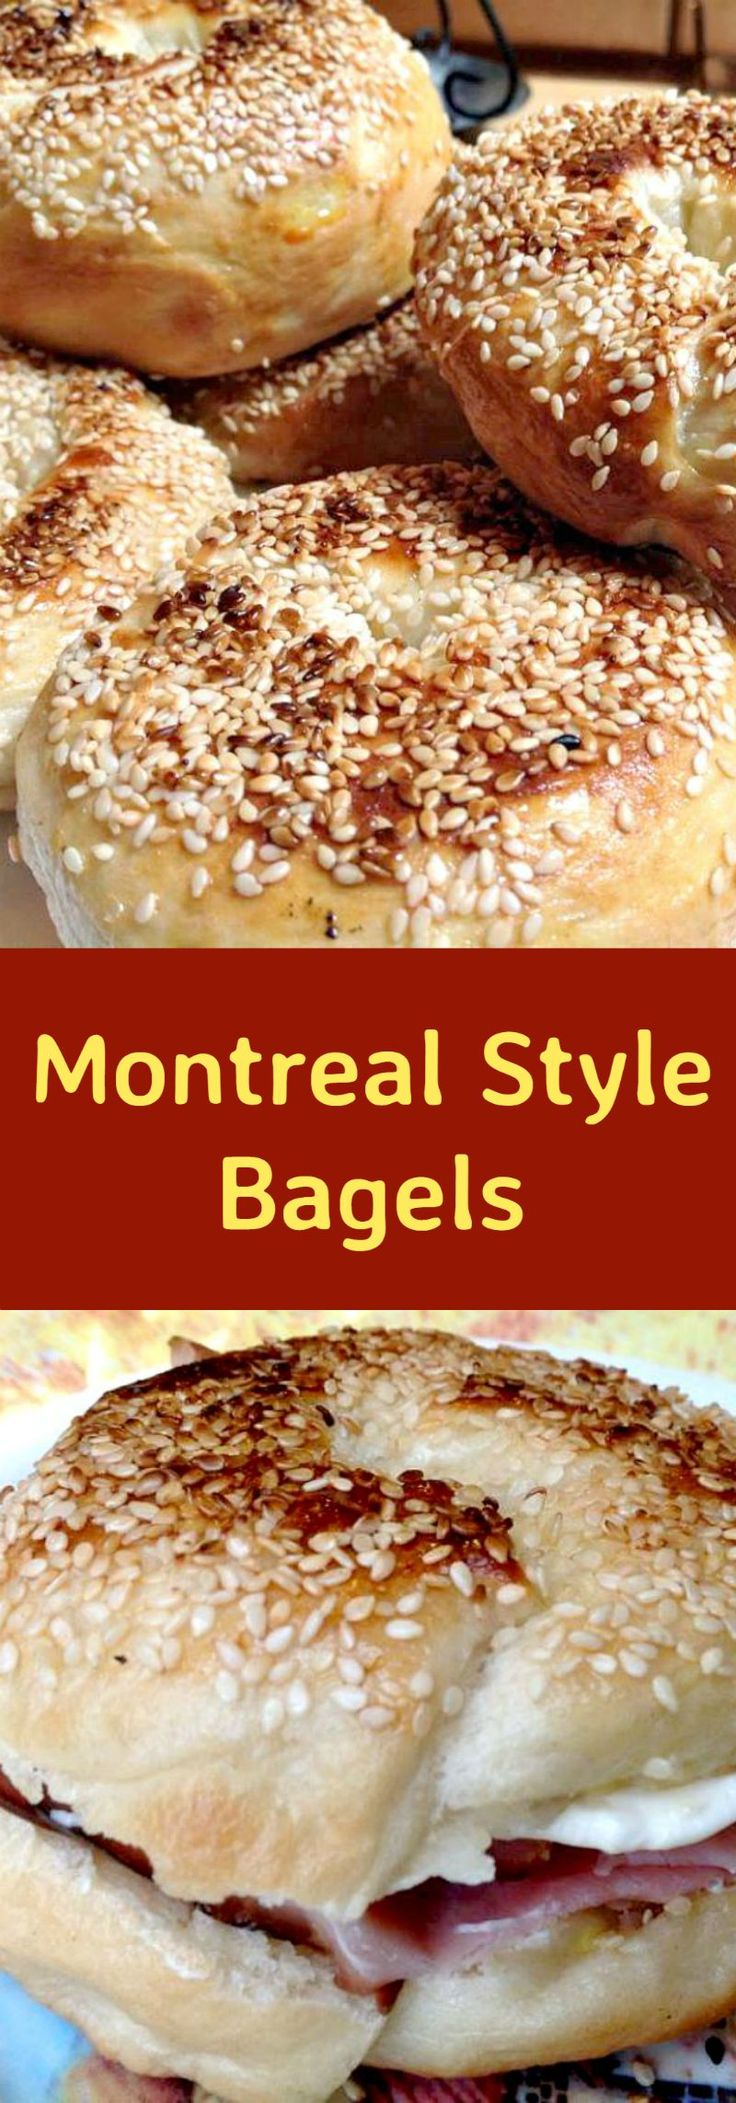 Montreal Style Bagels. A wonderful soft, sweeter bagel. Easy to follow instructions and freezer friendly too!